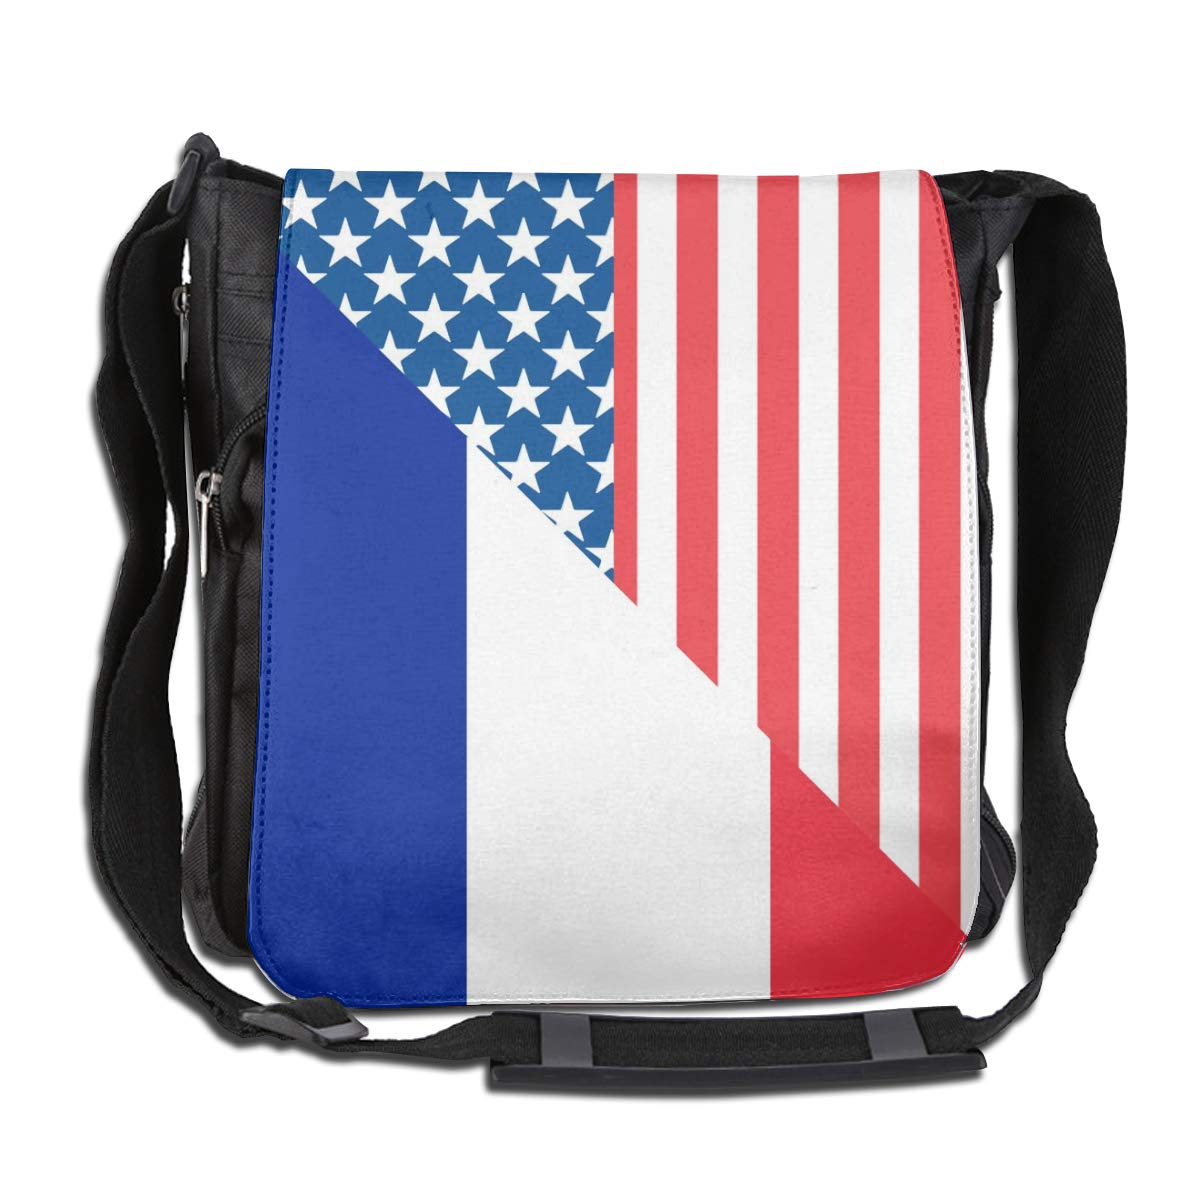 Unisex Classic Satchel Messenger Bags American And France Flag2 Crossbody Shoulder Bag Traveling Bag For School//Work//Trips